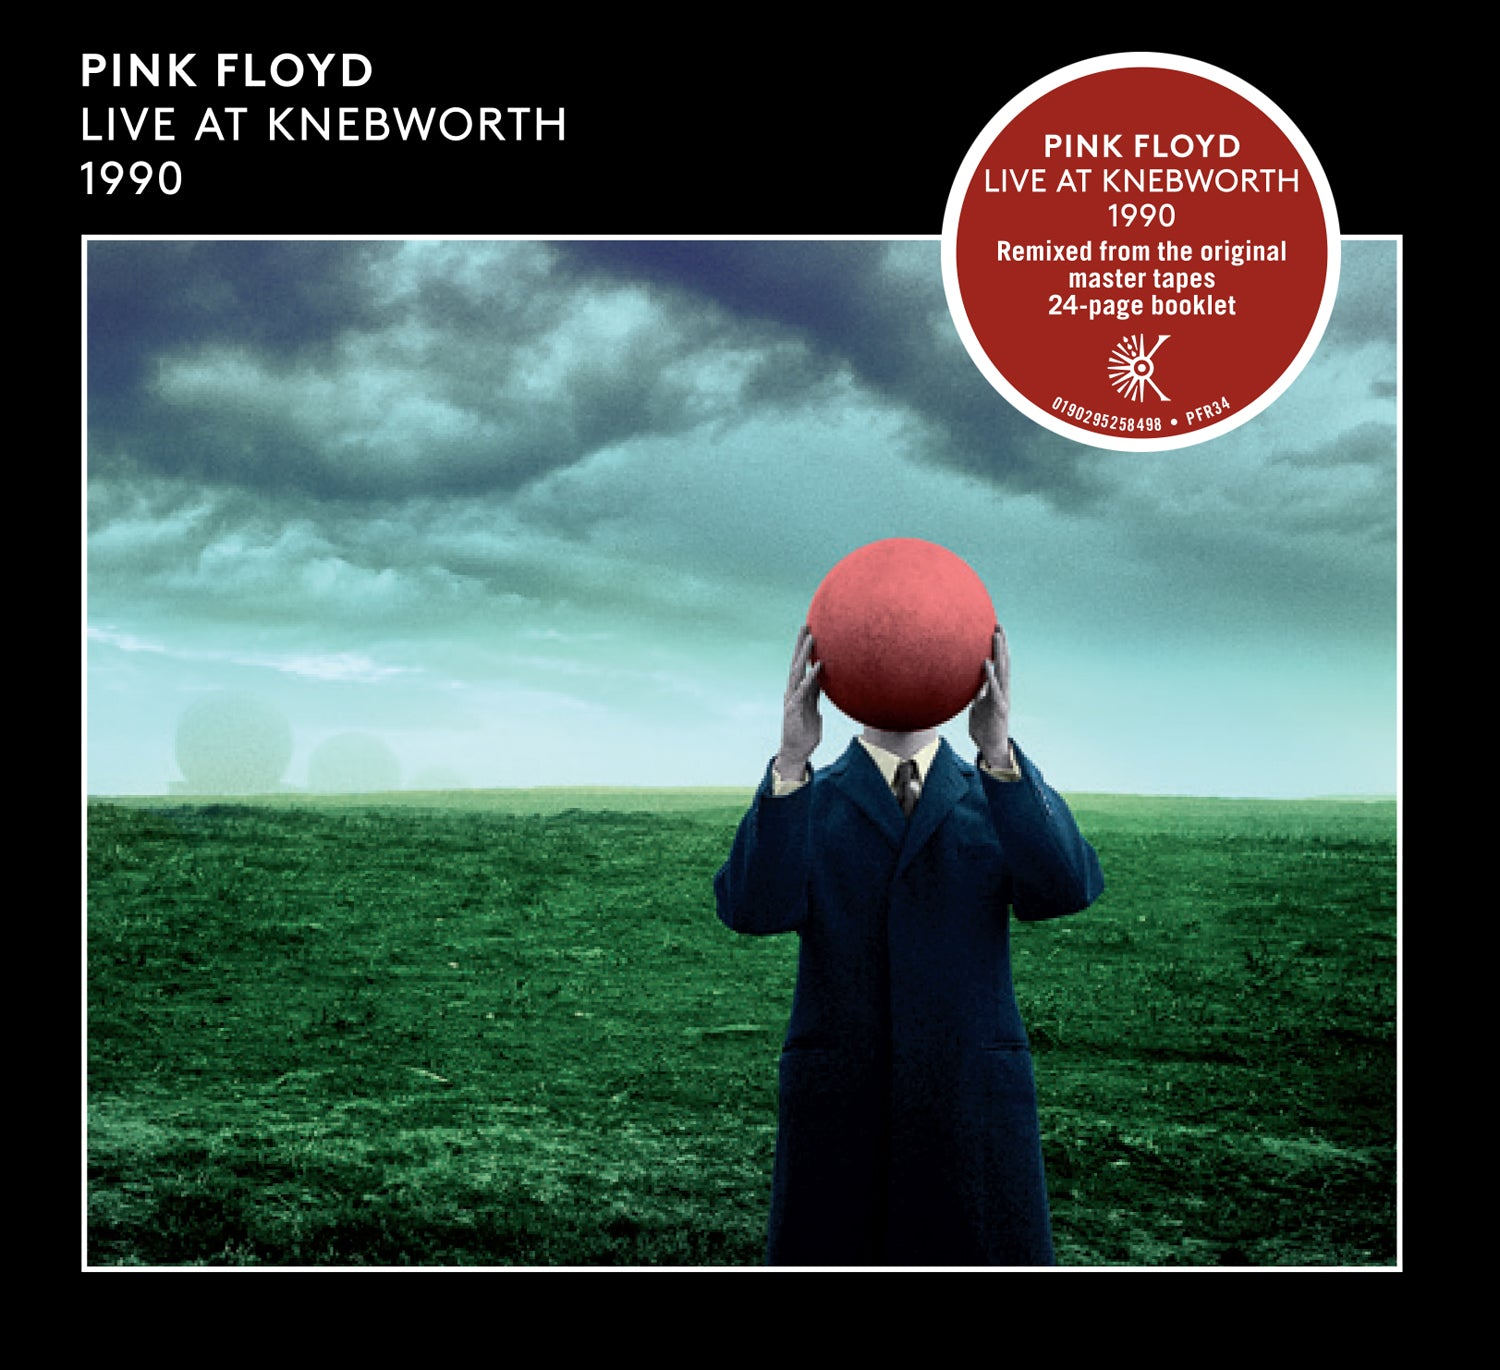 Pink Floyd - Live At Knebworth 1990 2CD Album